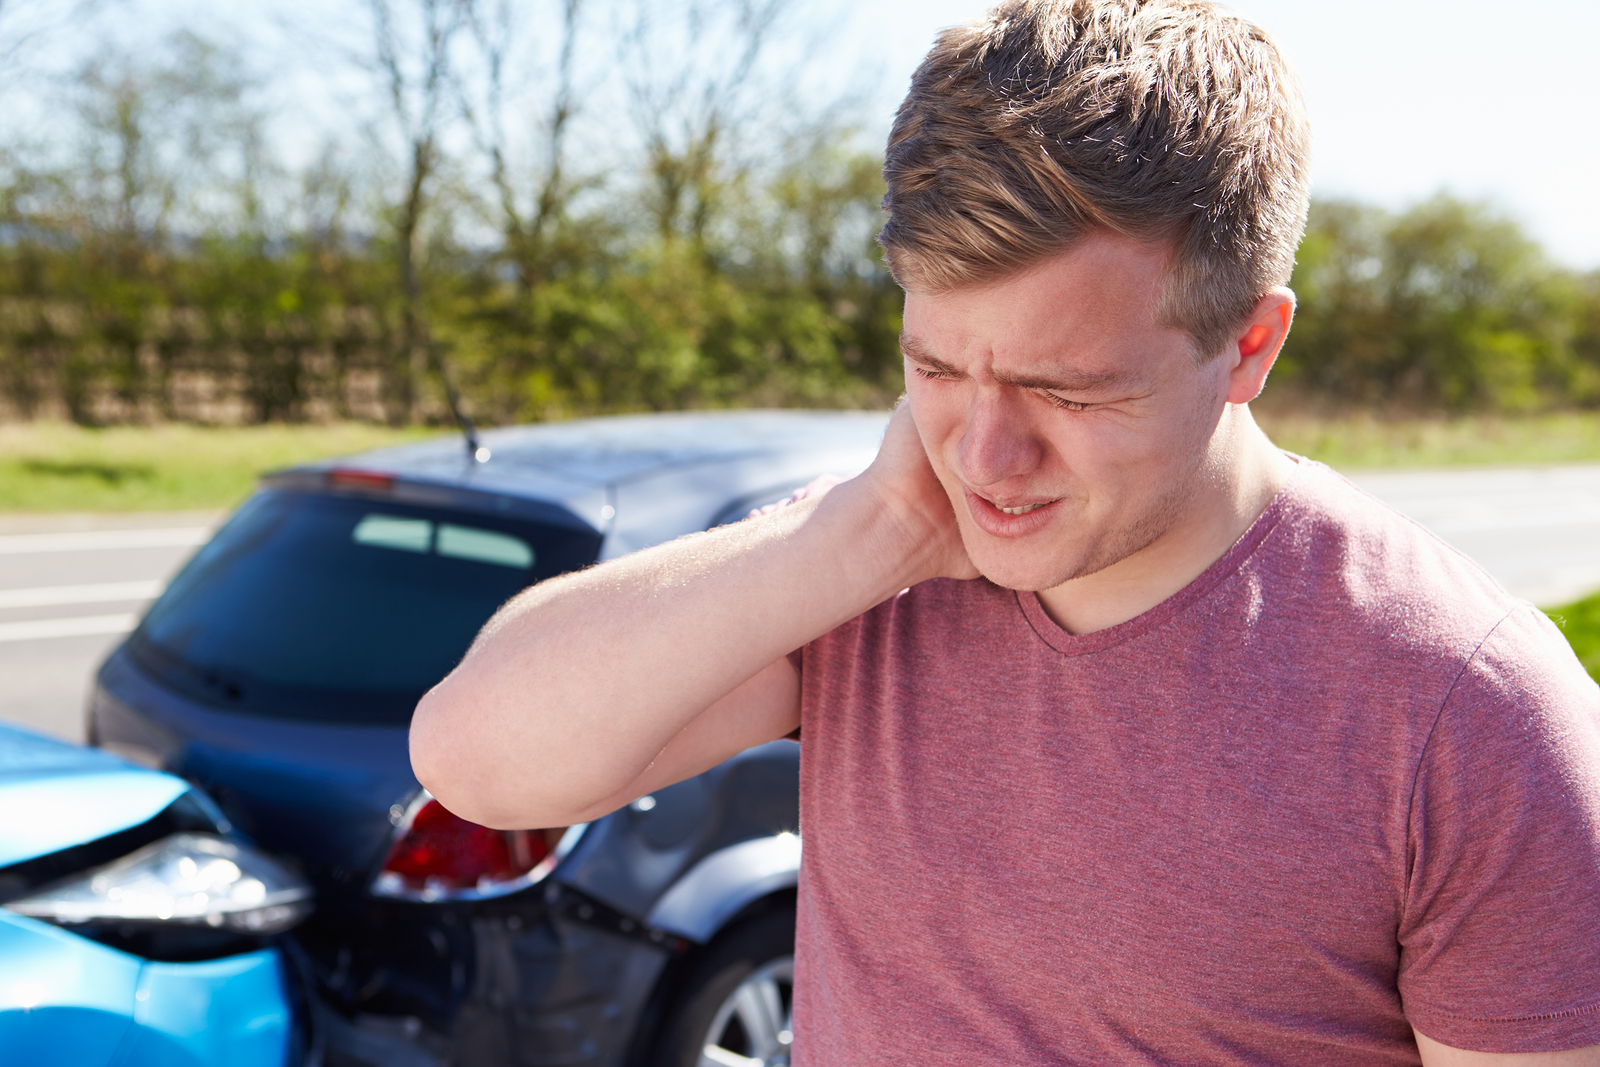 Whiplash pain can be helped with several modalities of physical therapy